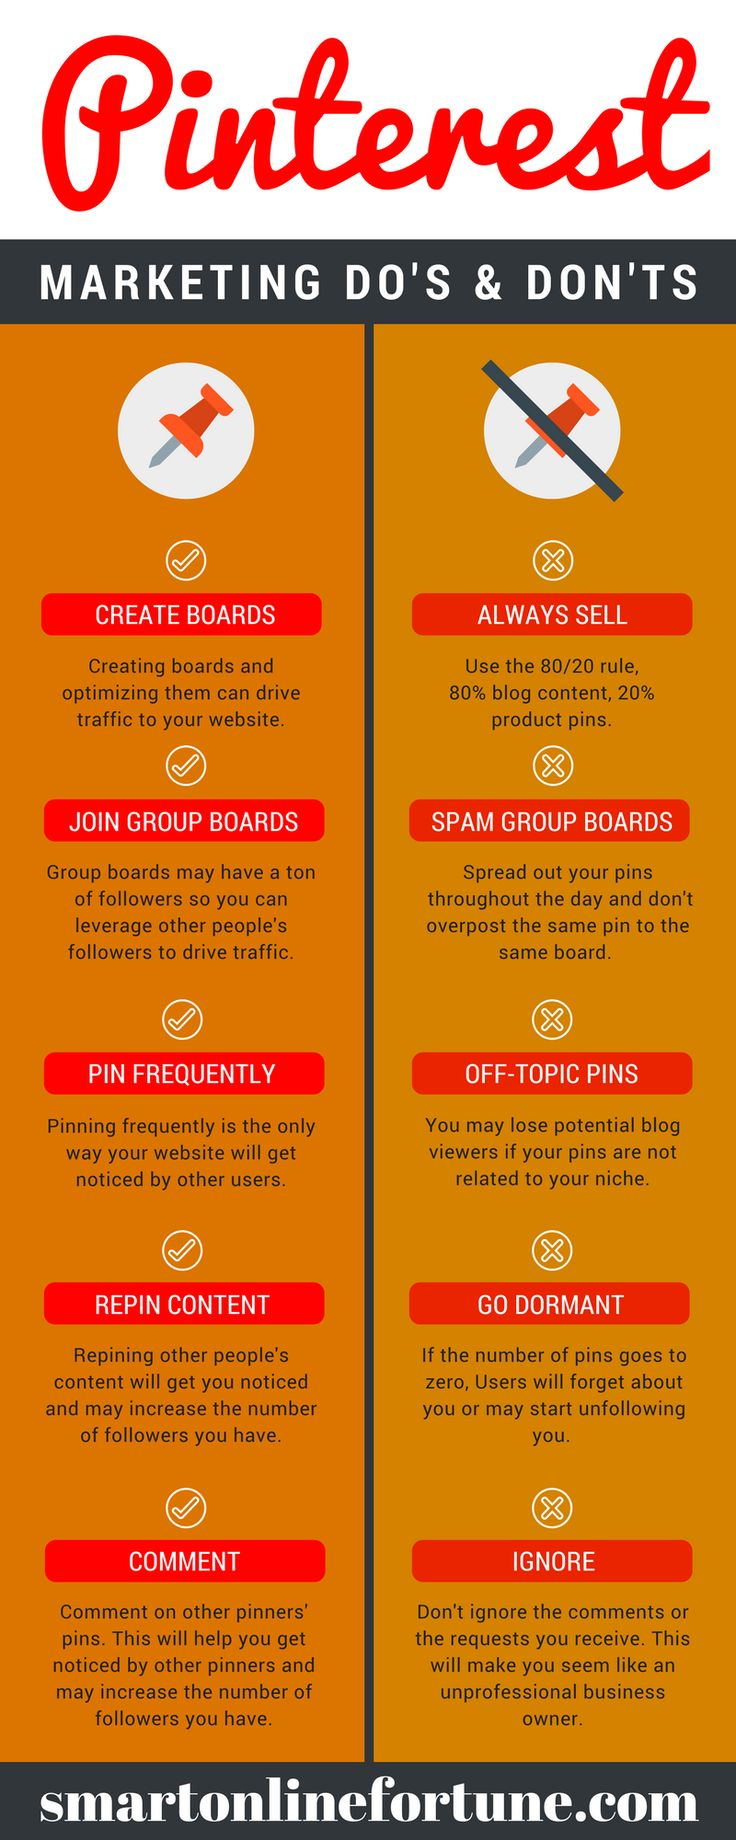 Learn about the do's and do not's of Pinterest marketing. Get thousands of Pinterest visitors to your website with these simple tricks. @smonlinefortune